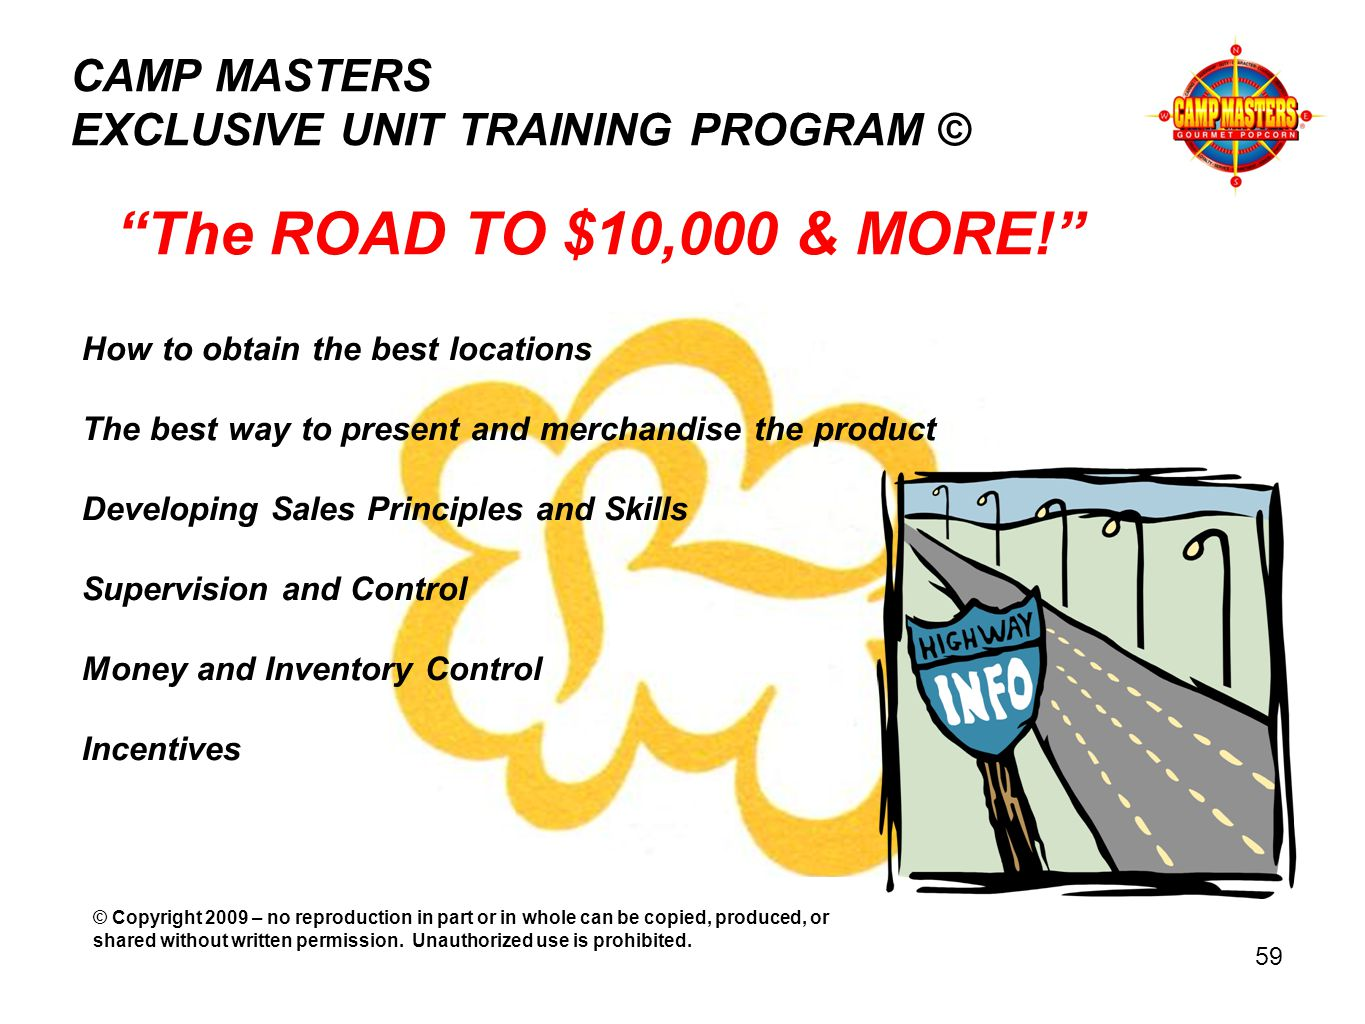 CAMP MASTERS EXCLUSIVE UNIT TRAINING PROGRAM © The ROAD TO $10,000 & MORE.